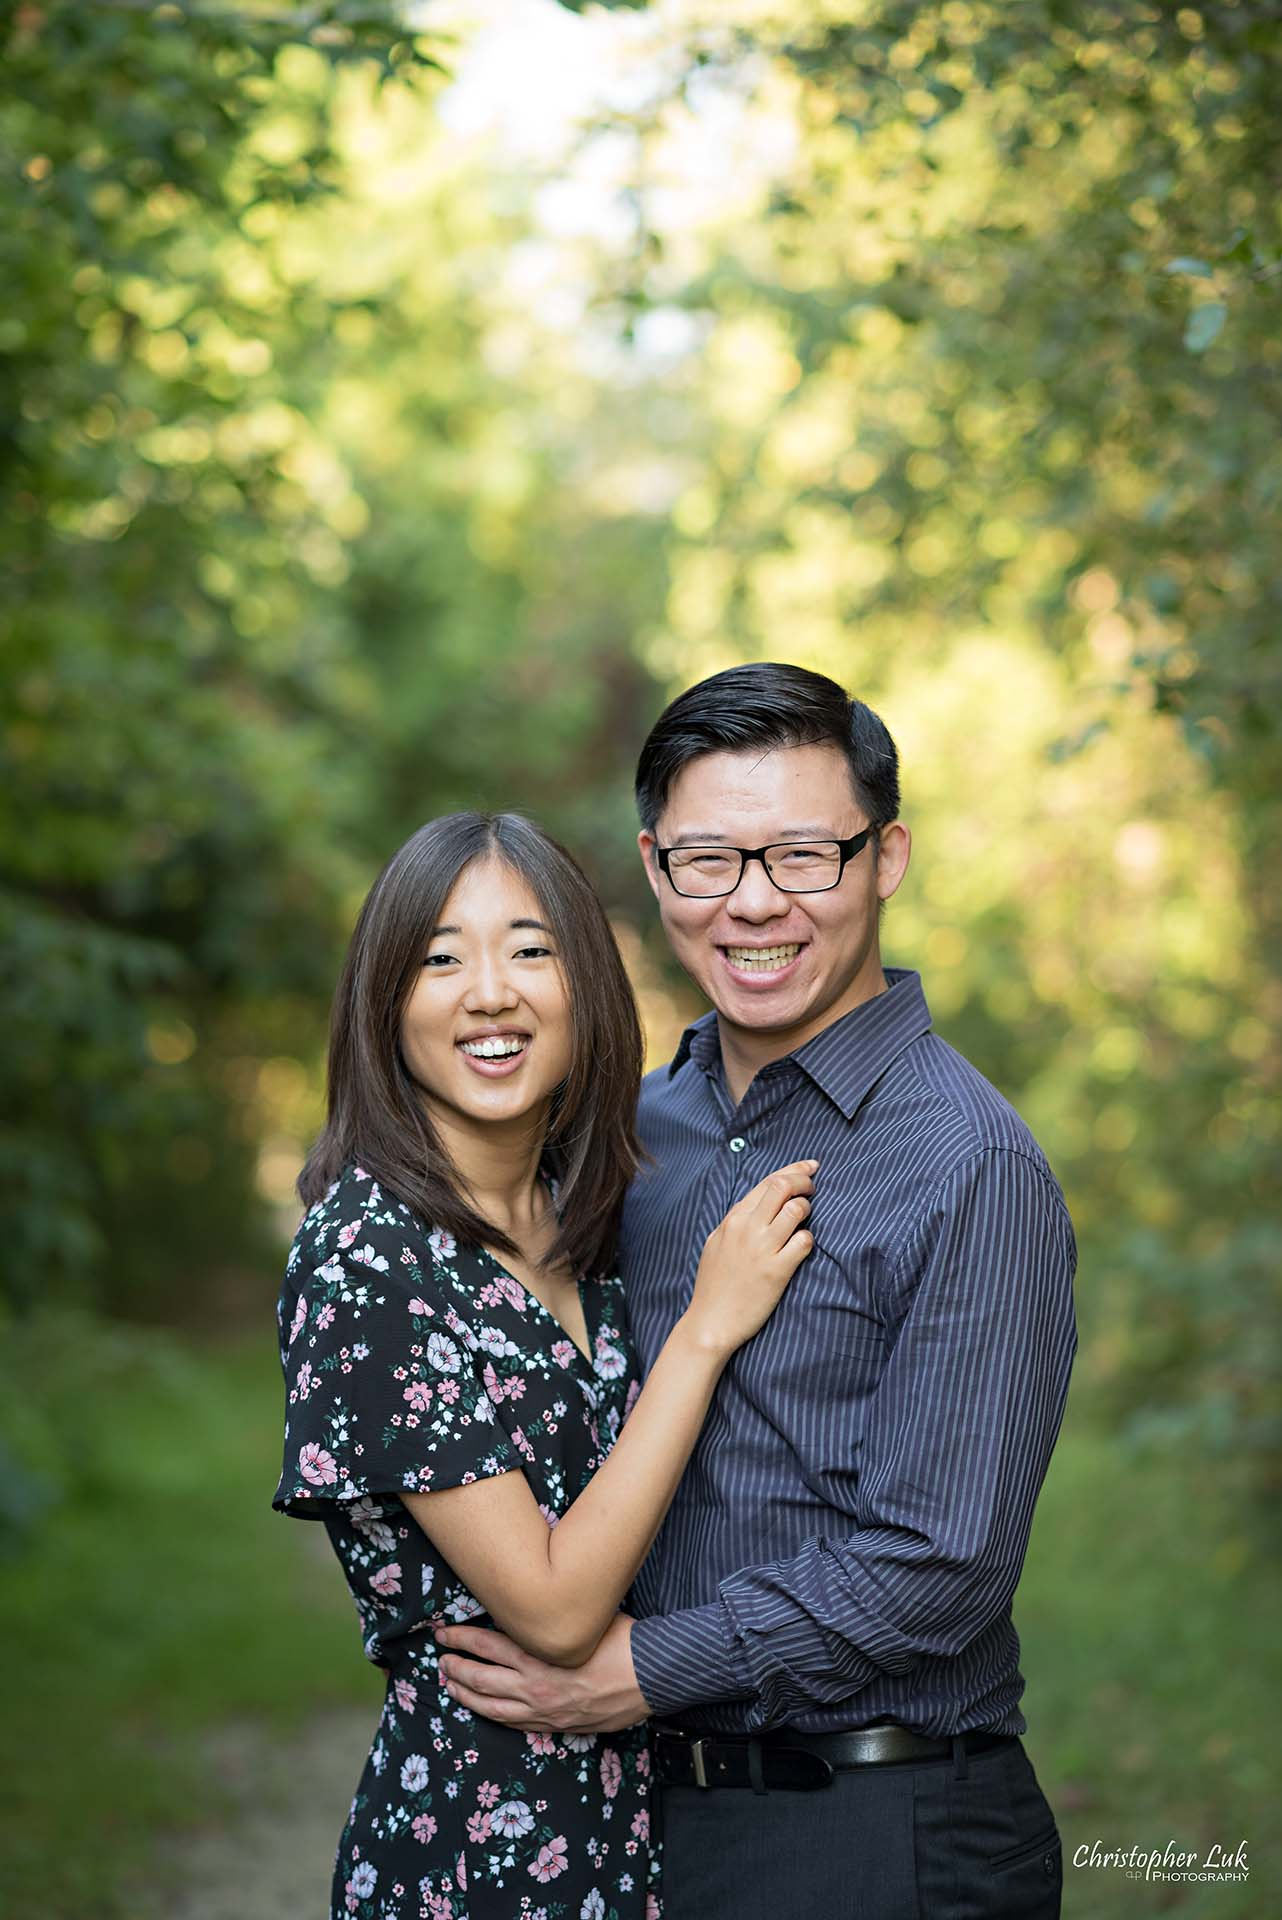 Christopher Luk Toronto Wedding Photographer - Richmond Hill Markham York Region Conservation Area Engagement PreWedding Chinese Korean - Natural Candid Photojournalistic Bride Groom Hug Smile Closeup Headshot